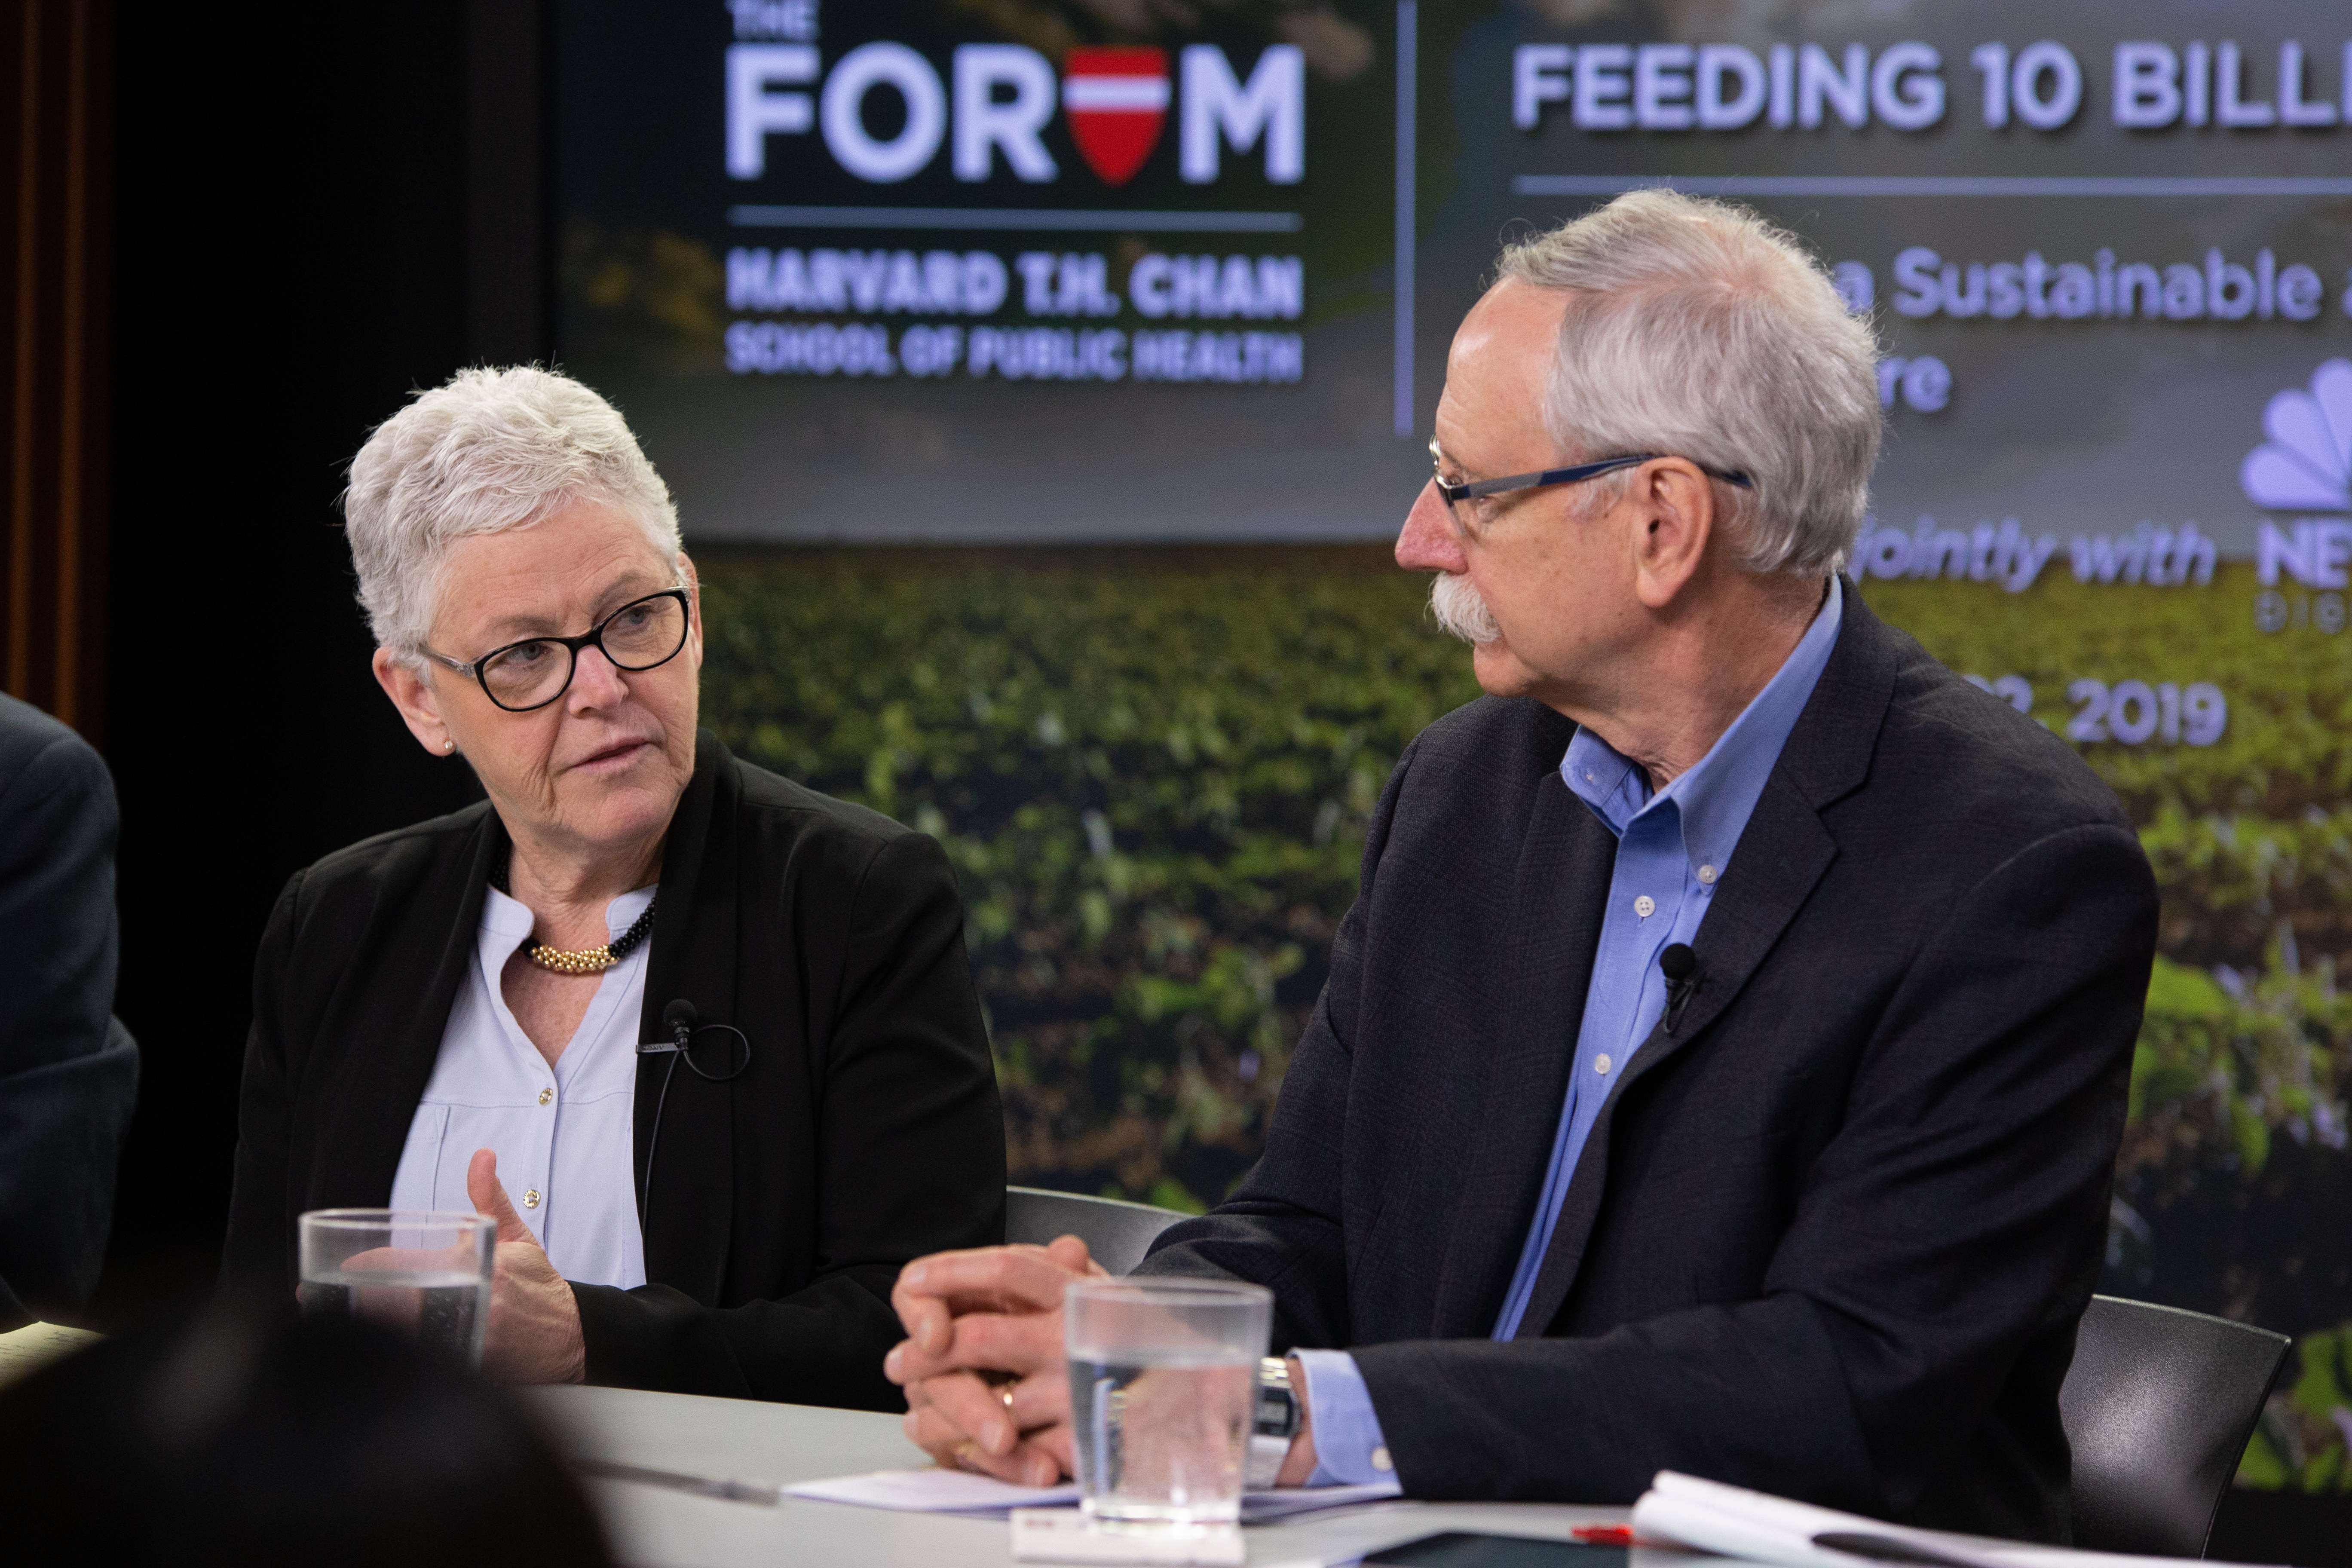 Gina McCarthy, 13th Administrator of the EPA; Professor of the Practice of Public Health in the Department of Environmental Health at Harvard T.H. Chan School of Public Health and Director of the Center for Climate, Health, and the Global Environment; Walter Willett, Professor of Epidemiology and Nutrition, Harvard T.H. Chan School of Public Health